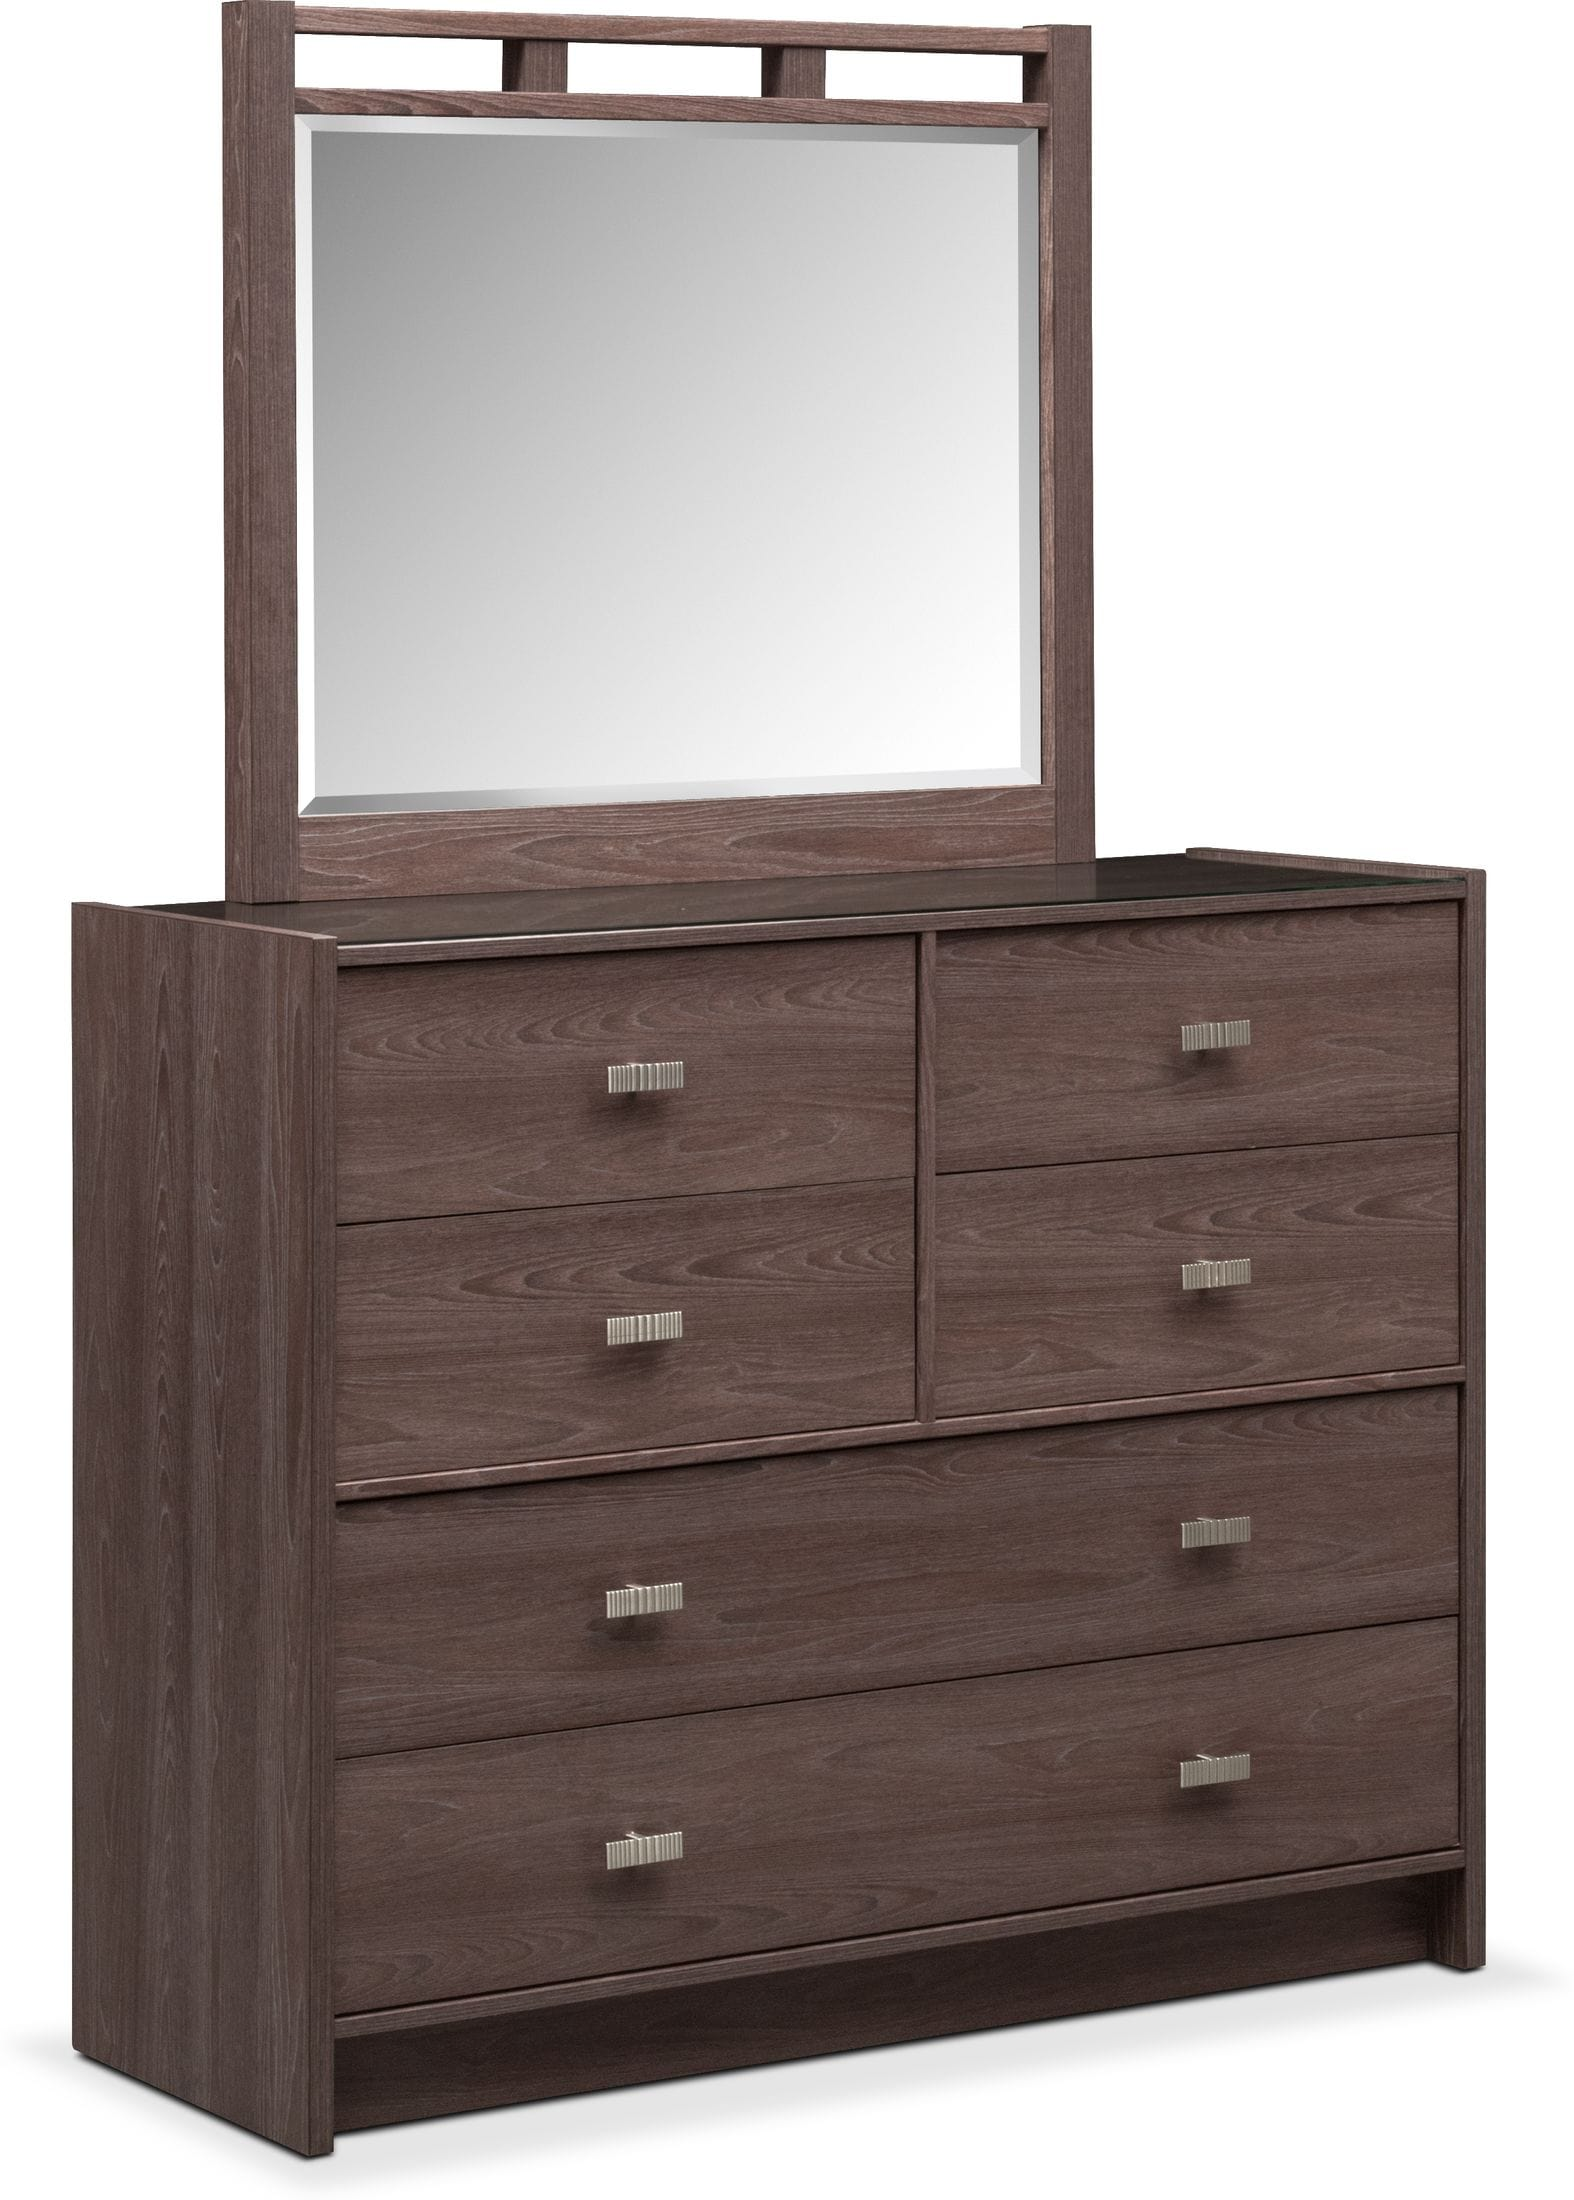 Bedroom Furniture - Britto Dresser and Mirror